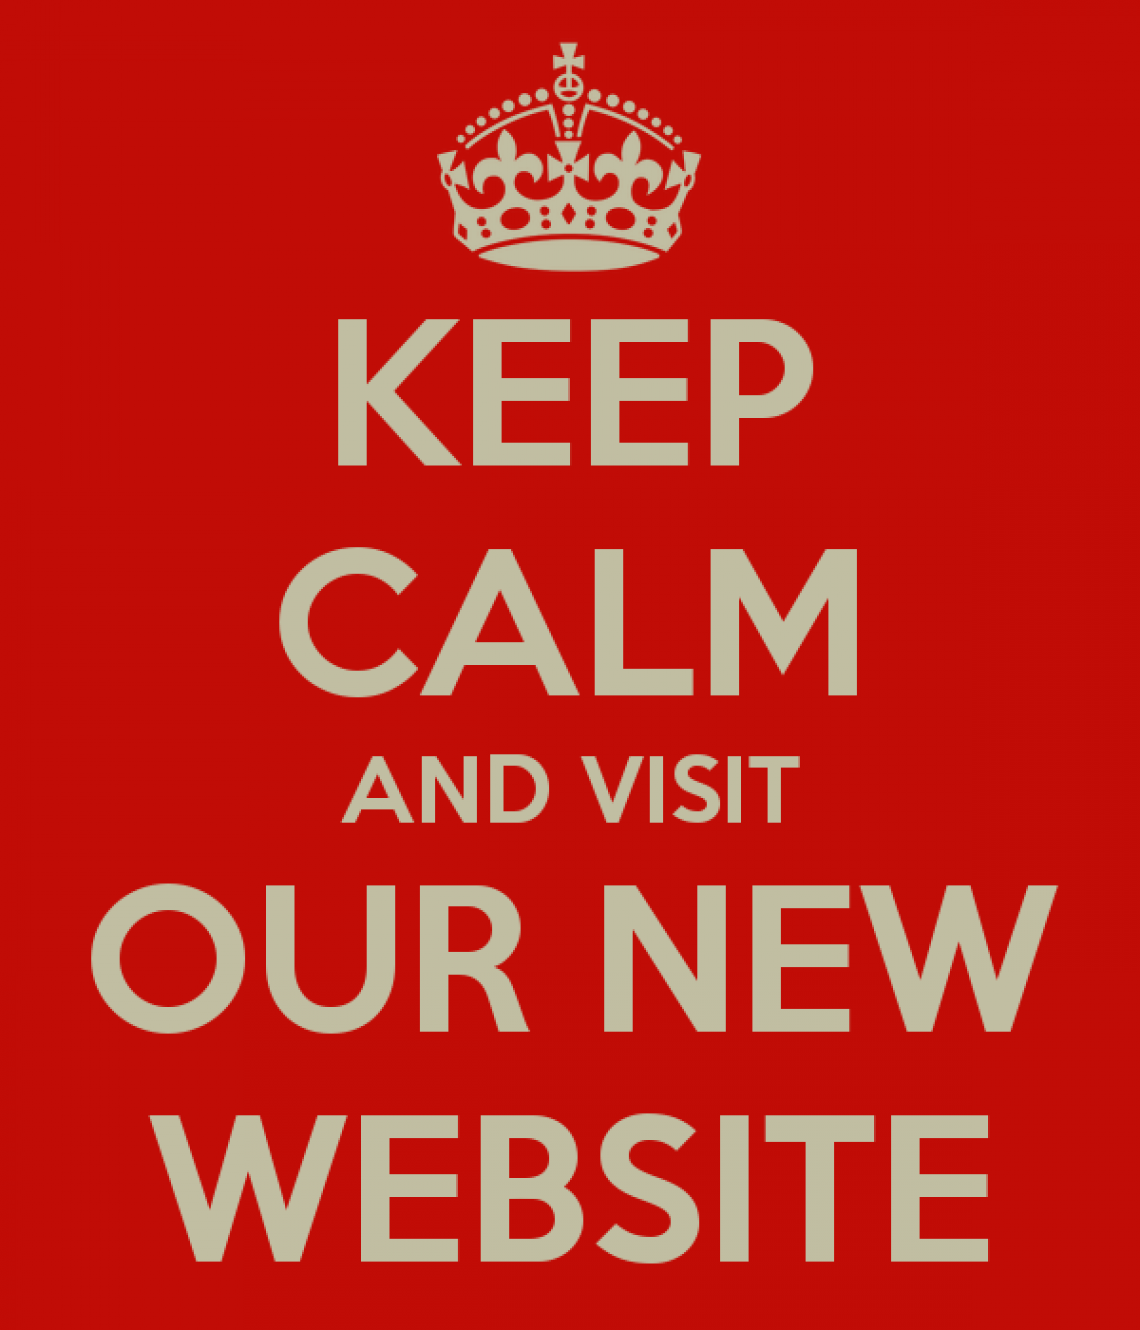 keep-calm-and-visit-our-new-website-21